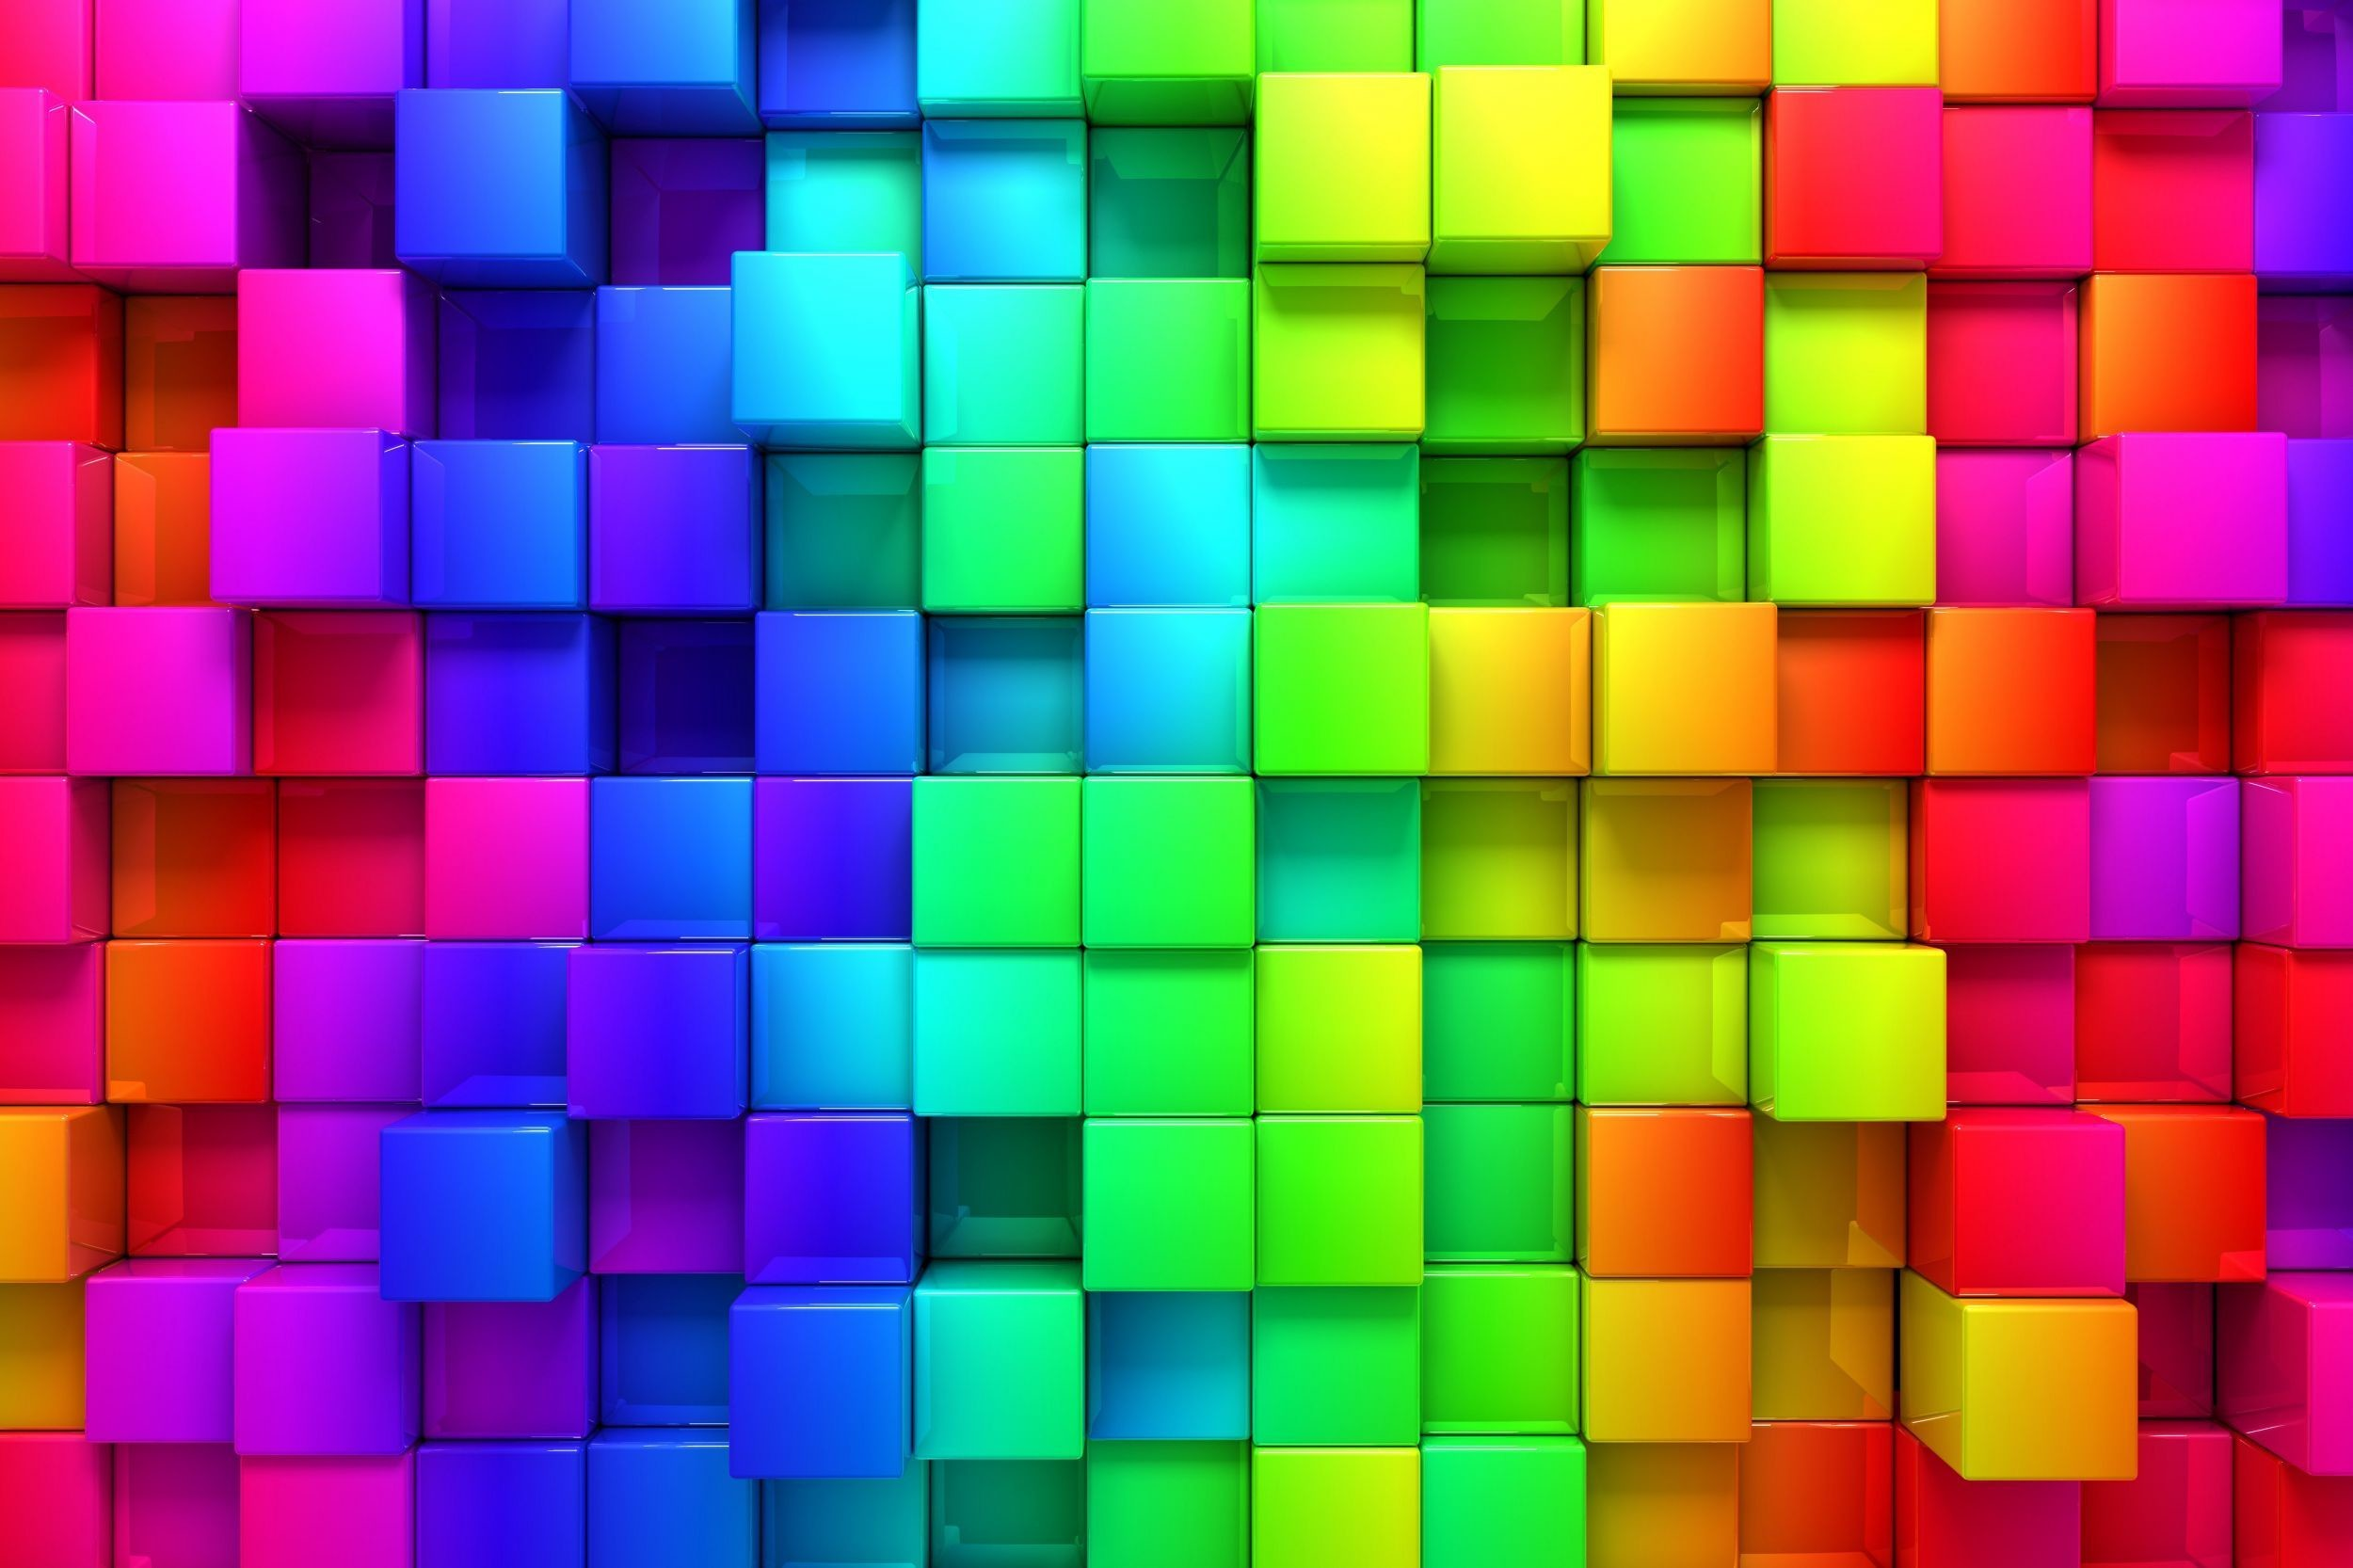 2500x1666 quality cool color wallpapers for desktop and mobile